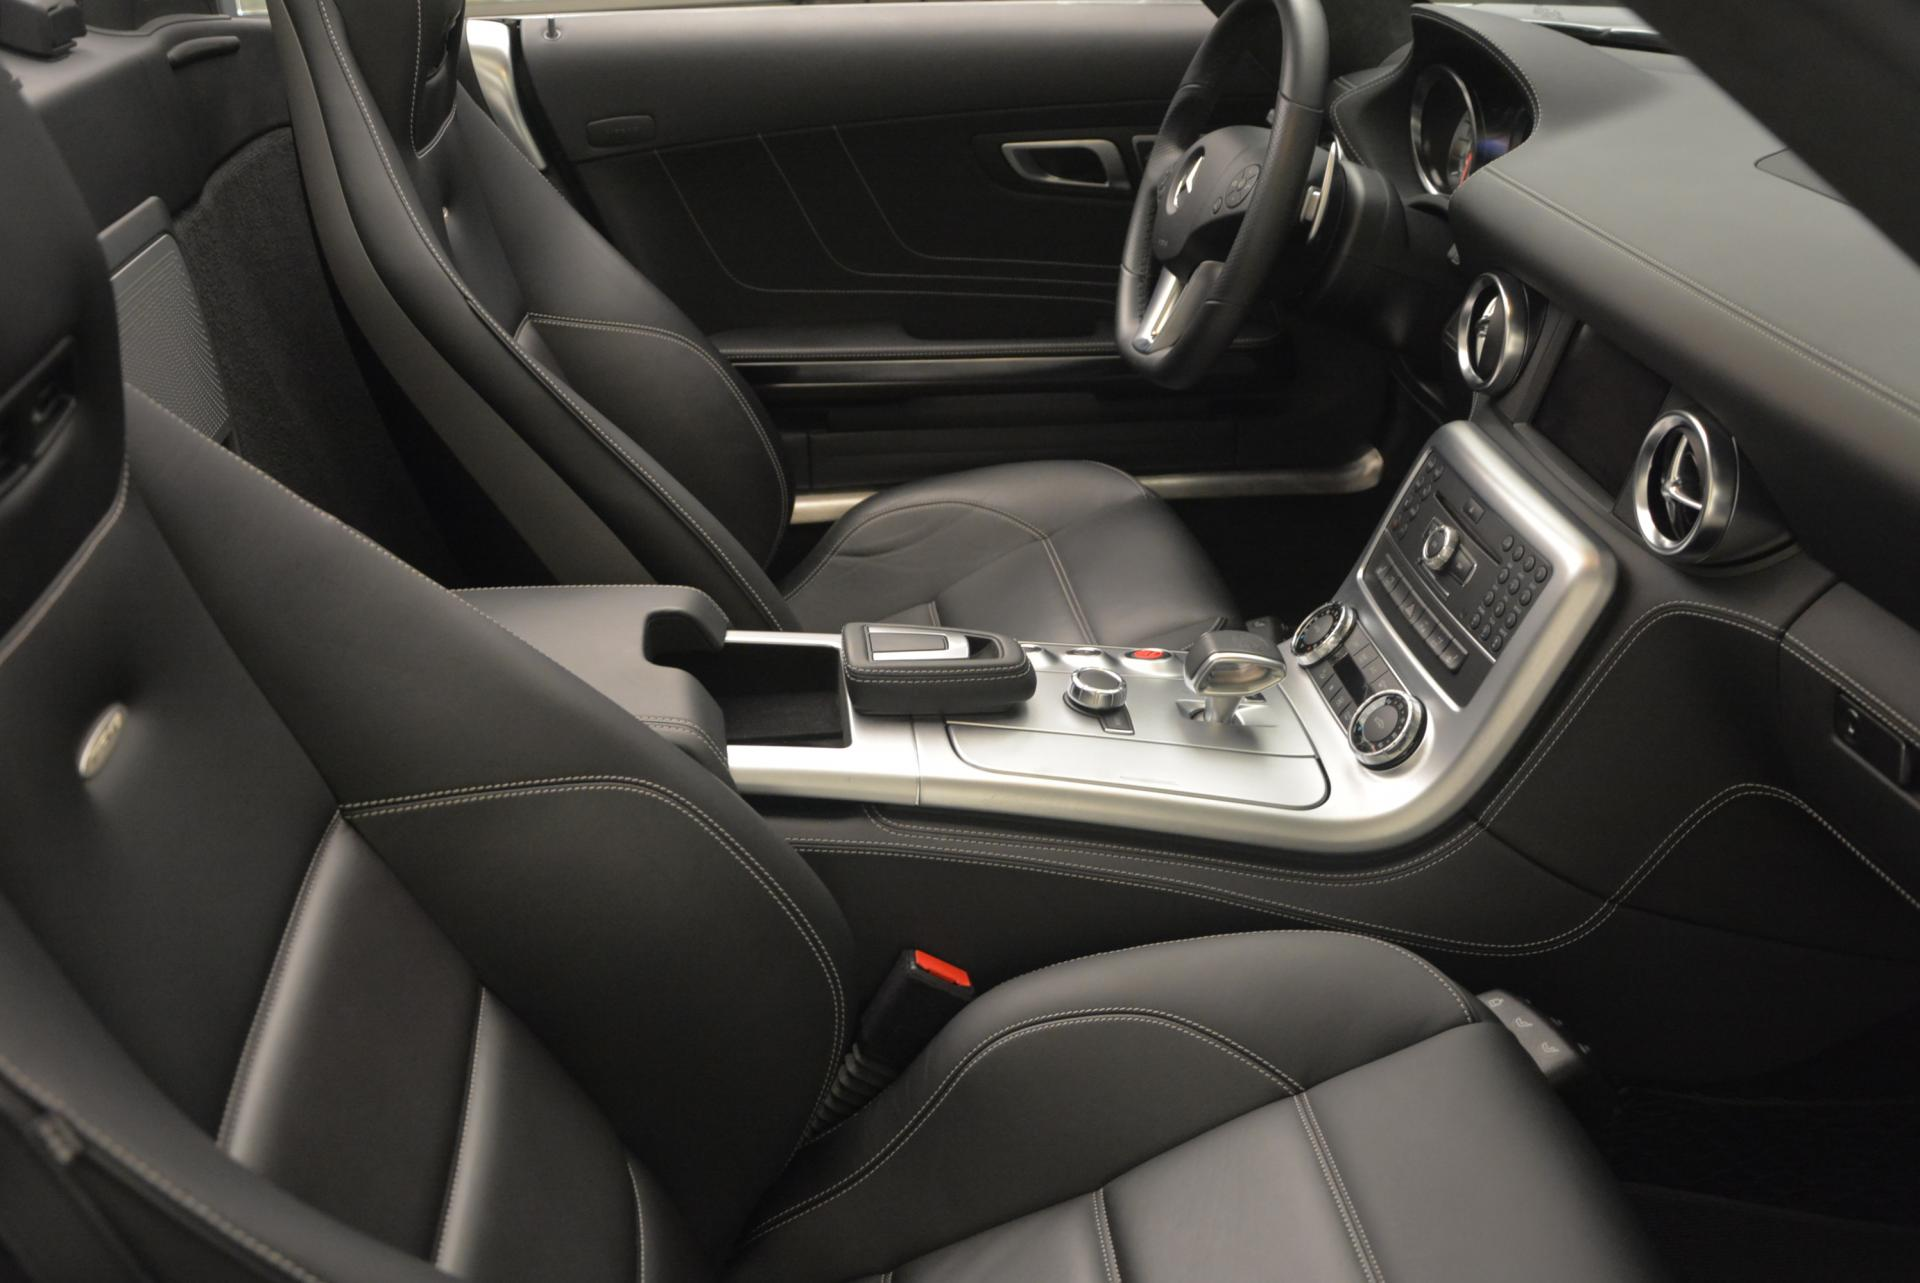 Used 2012 Mercedes Benz SLS AMG  For Sale In Greenwich, CT. Alfa Romeo of Greenwich, 7058 517_p34